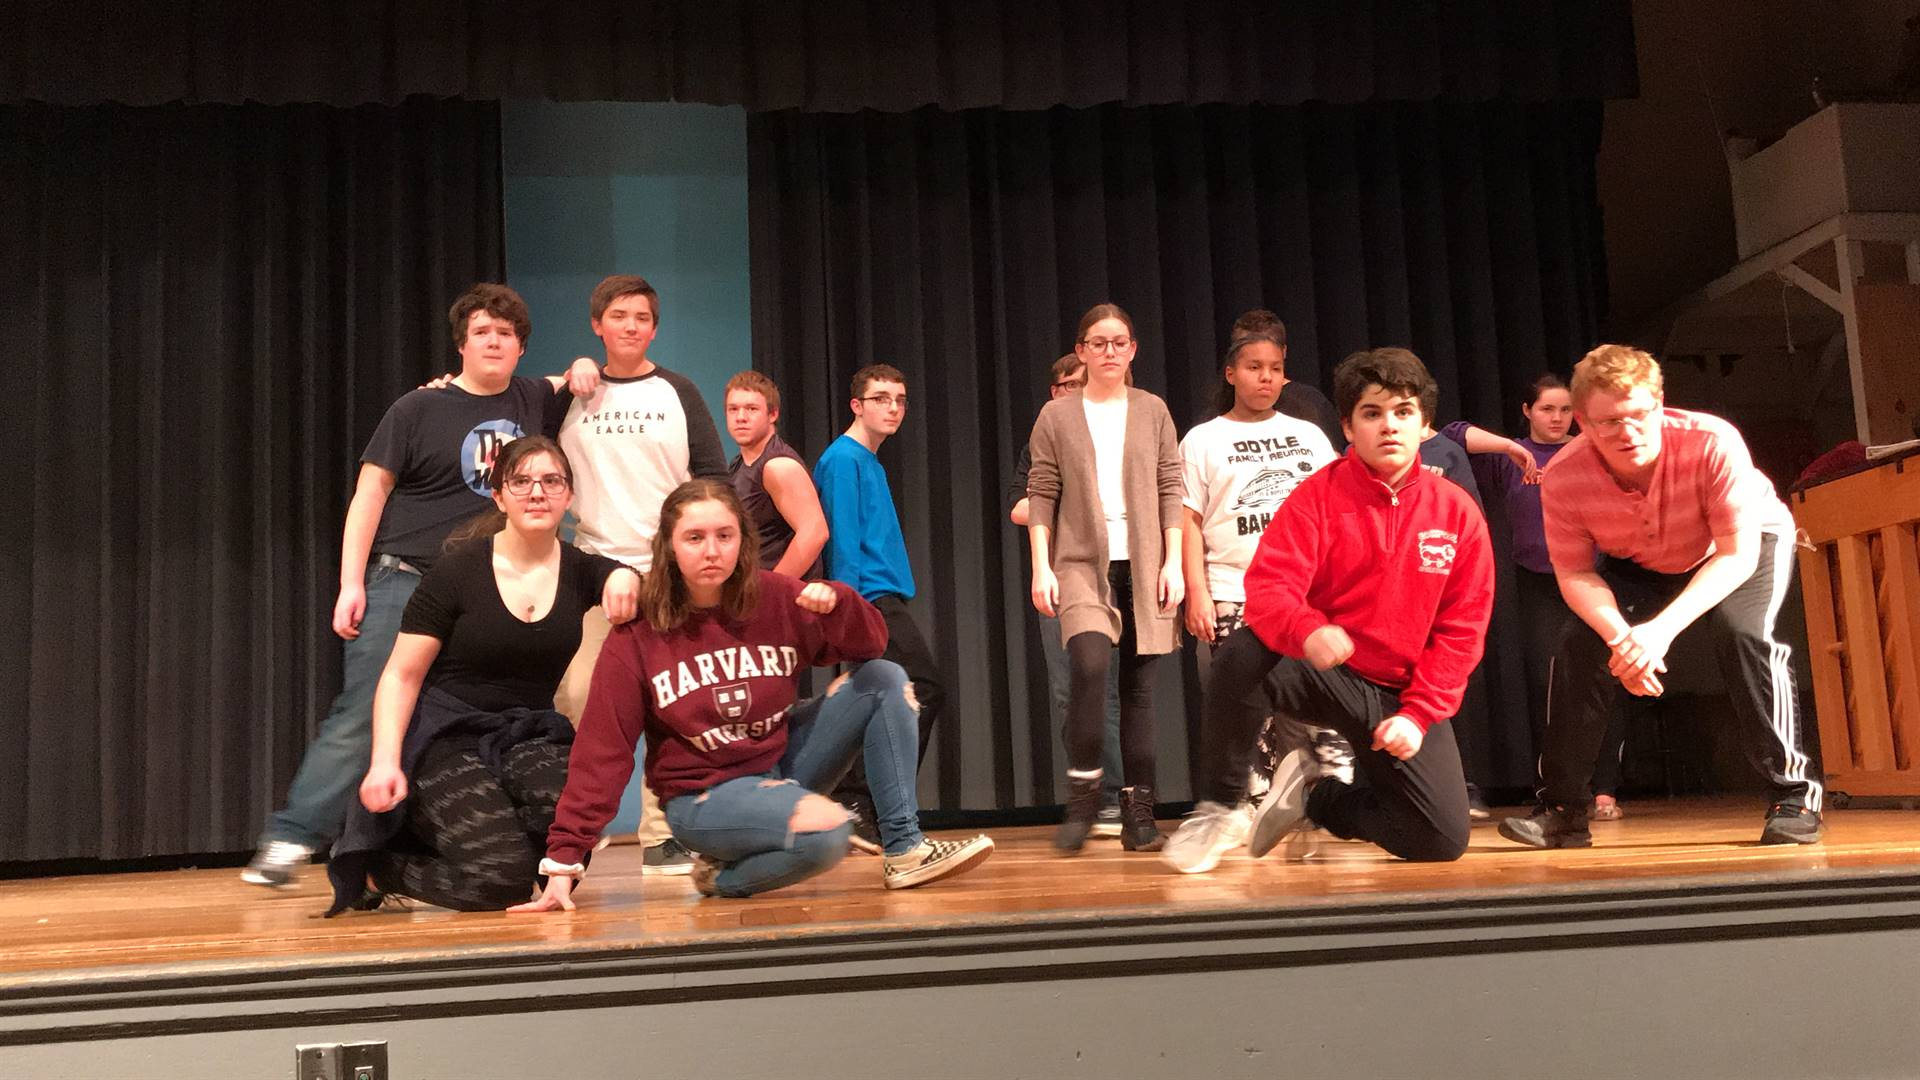 Photo during rehearsal for Spring Musical